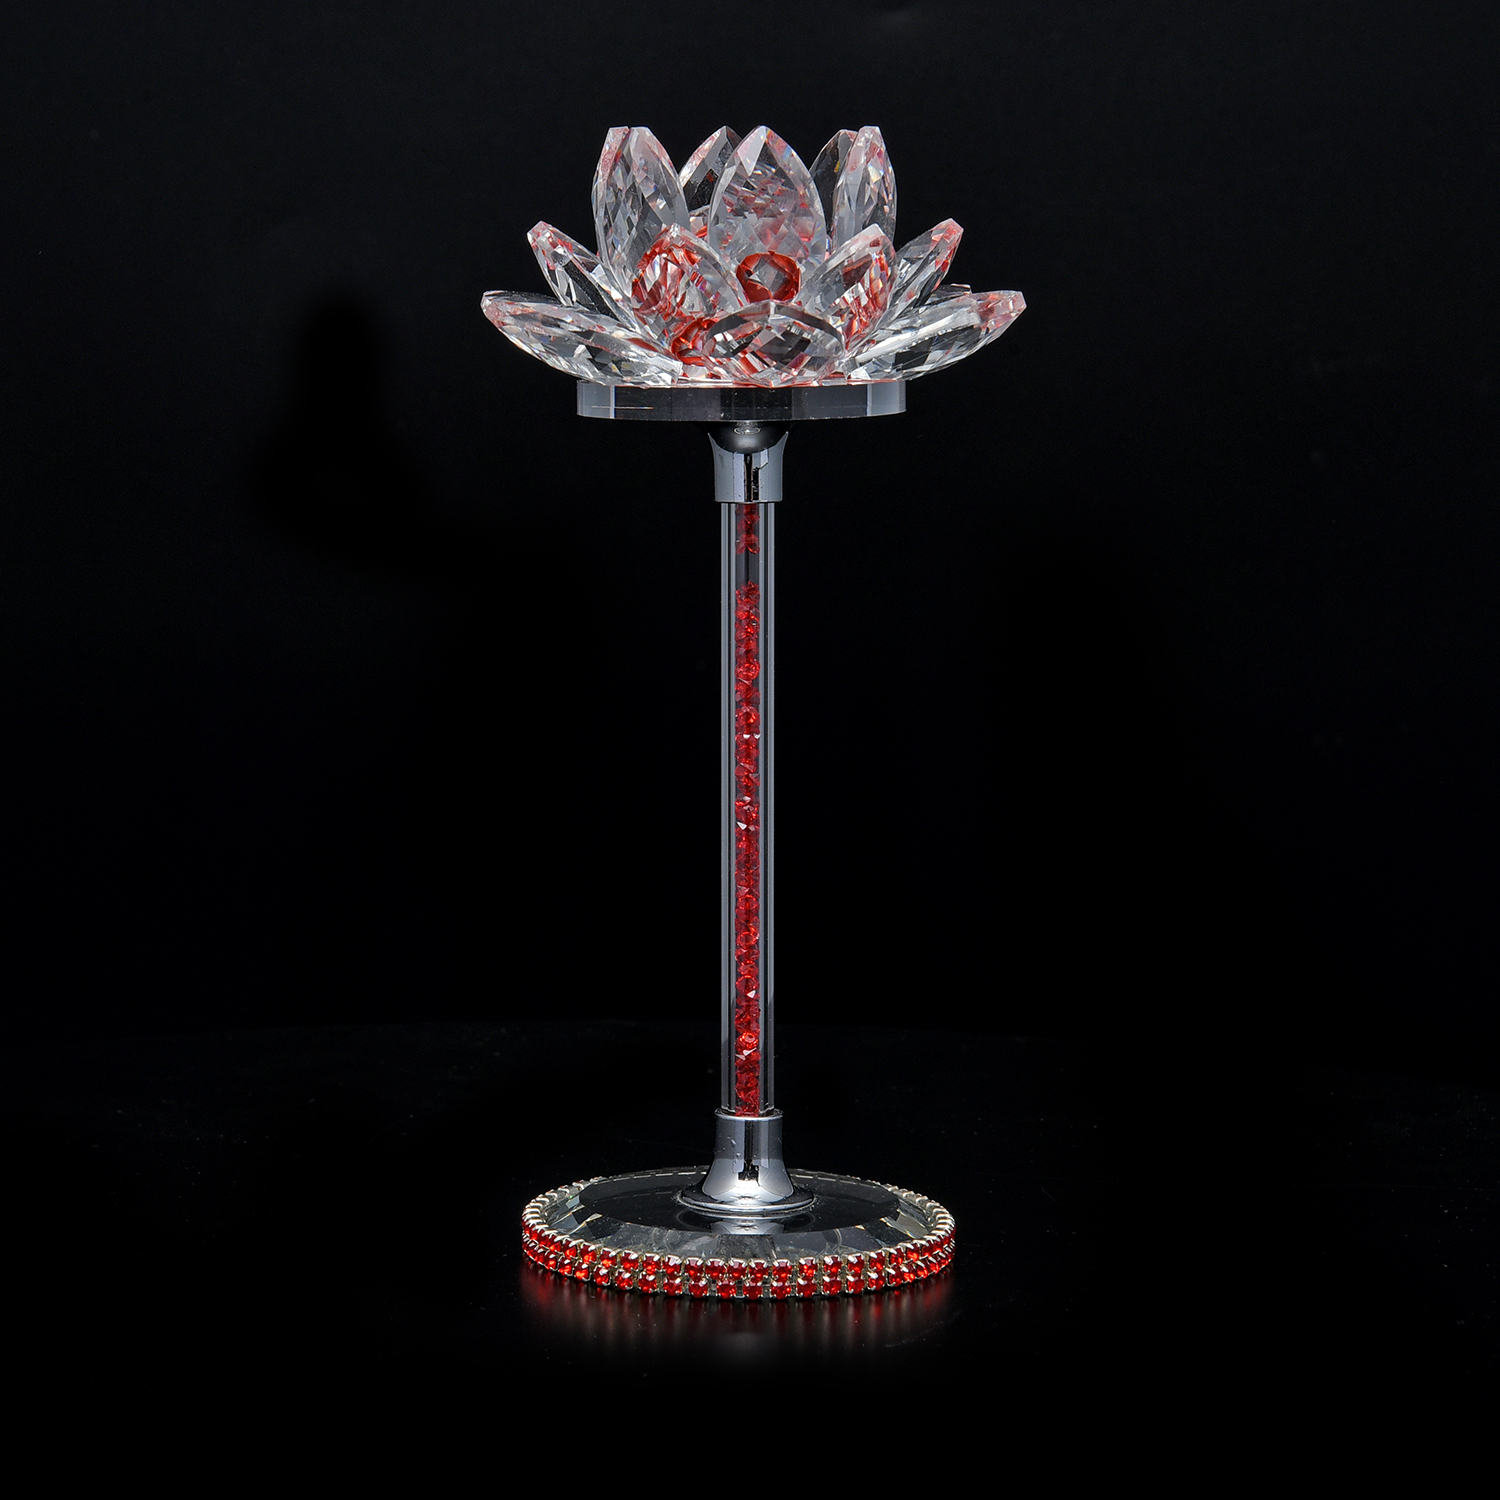 Red glass crystal lotus flower decor crystal decor Crystal home decor